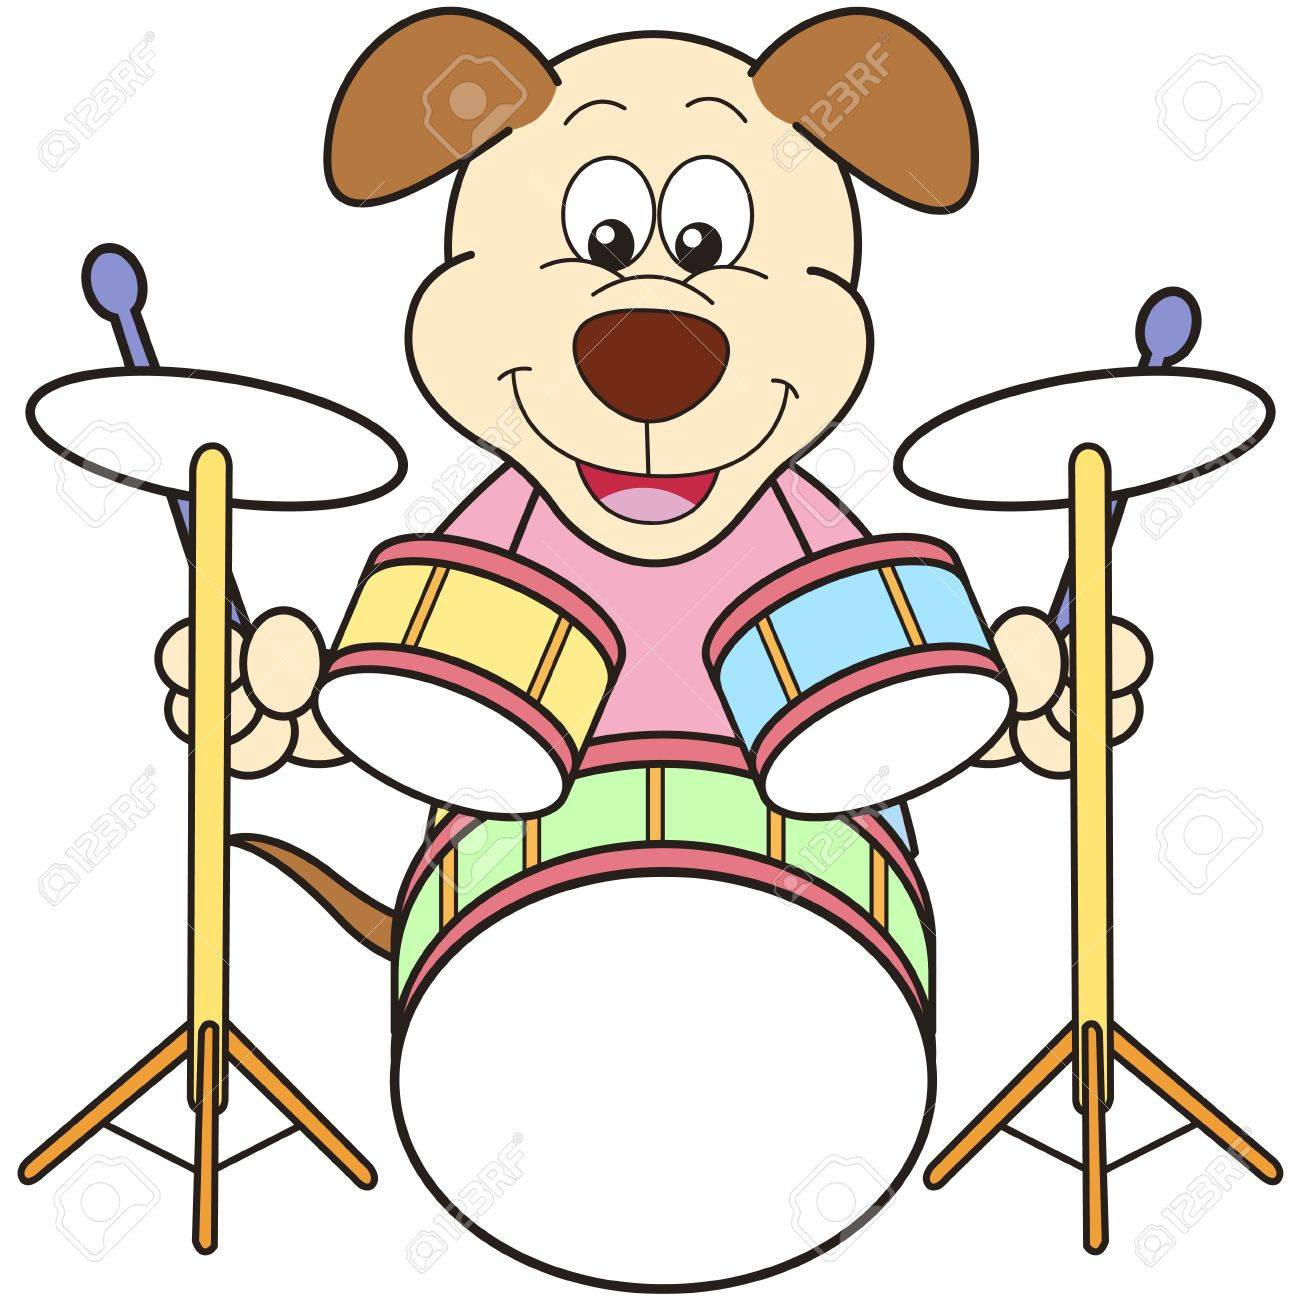 Cartoon Dog Playing Drums Royalty Free Cliparts Vectors And Stock Illustration Image 18589283